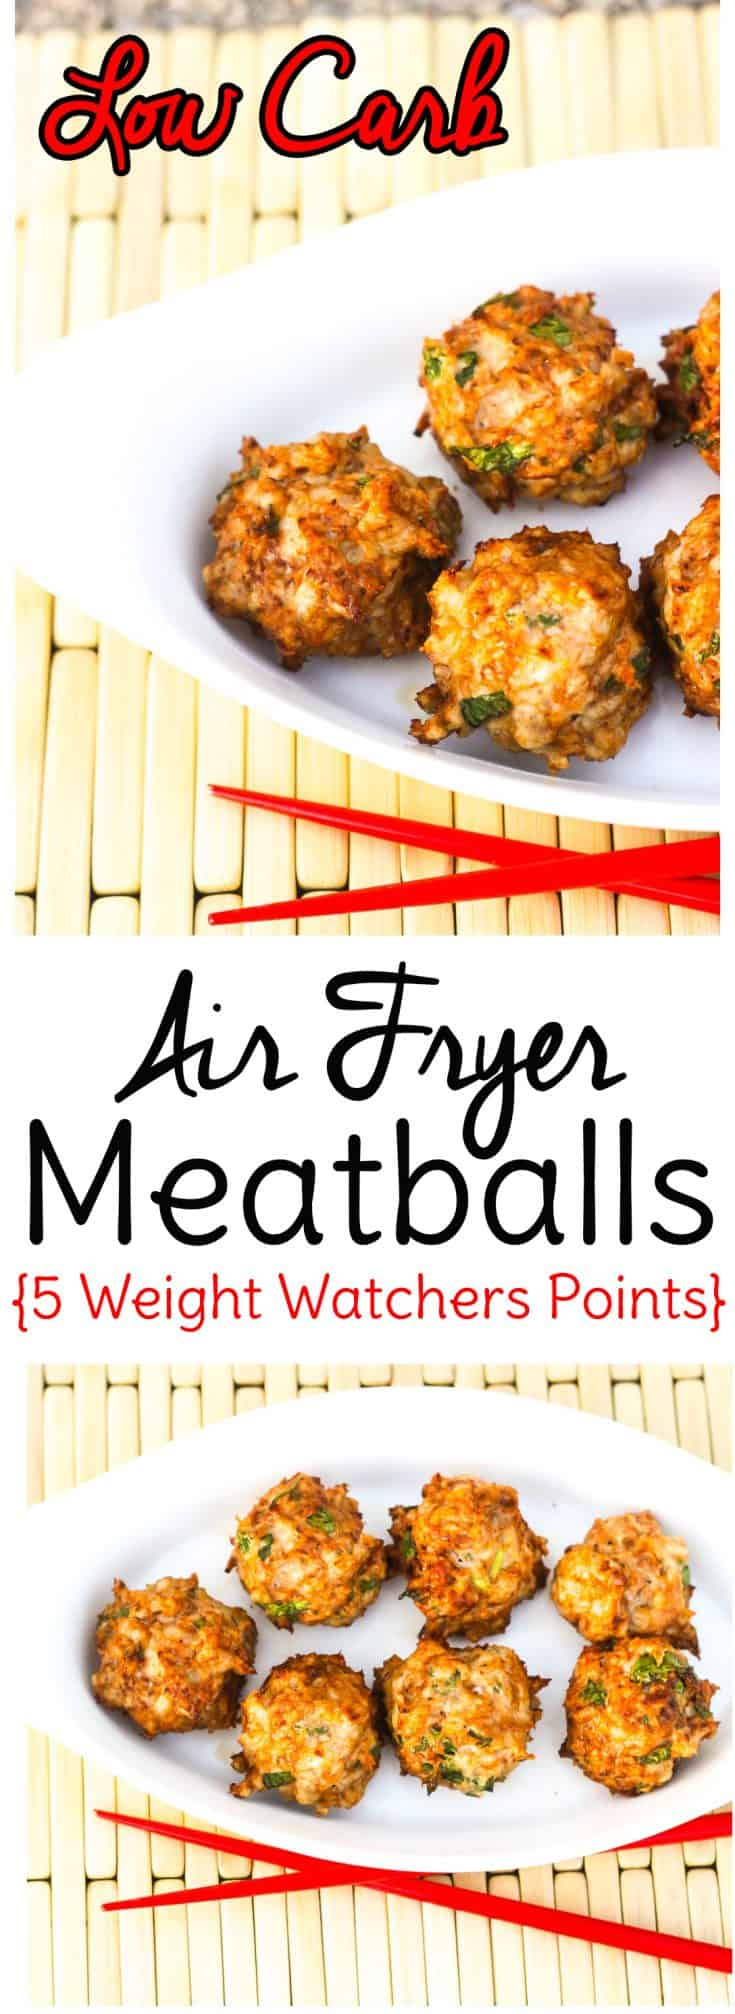 Make low carb meatballs in the air fryer with this simple recipe. Only 2 carbs per serving and 5 Weight Watchers points! #lowcarb #keto #airfryer #weightwatchers